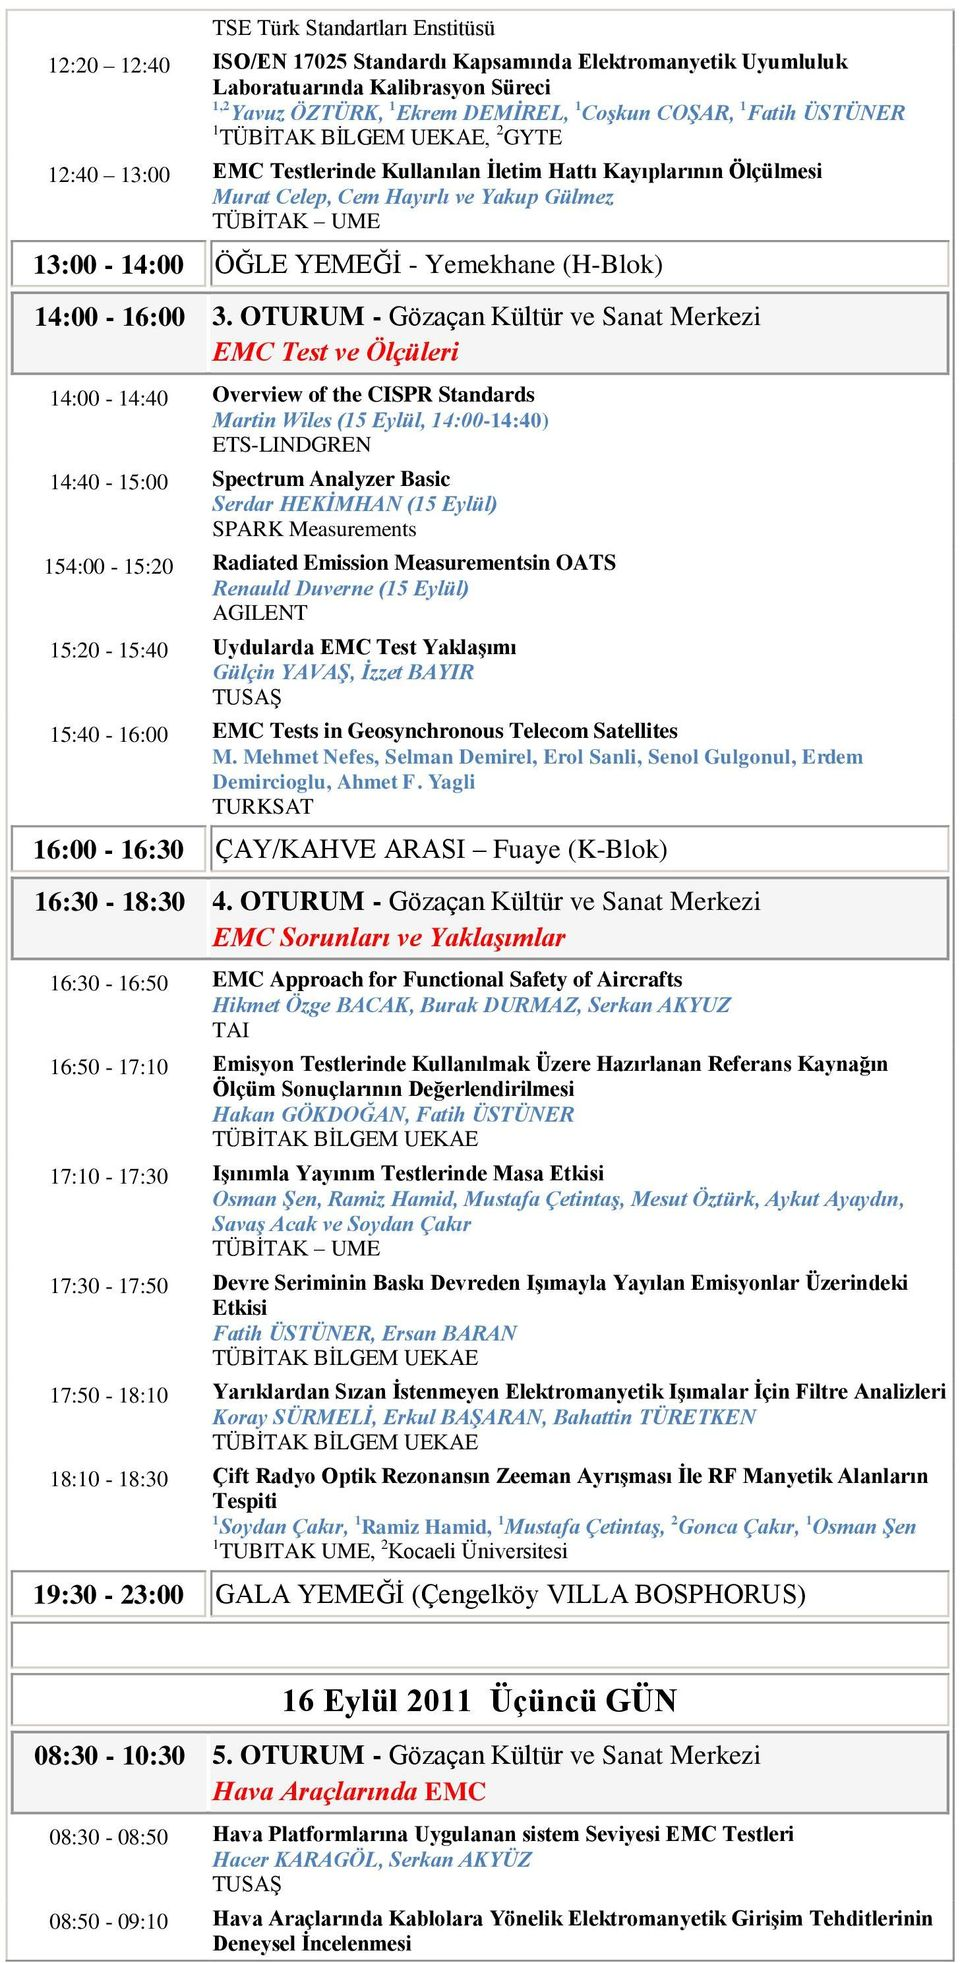 OTURUM - Gözaçan Kültür ve Sanat Merkezi EMC Test ve Ölçüleri 14:00-14:40 Overview of the CISPR Standards Martin Wiles (15 Eylül, 14:00-14:40) ETS-LINDGREN 14:40-15:00 Spectrum Analyzer Basic Serdar